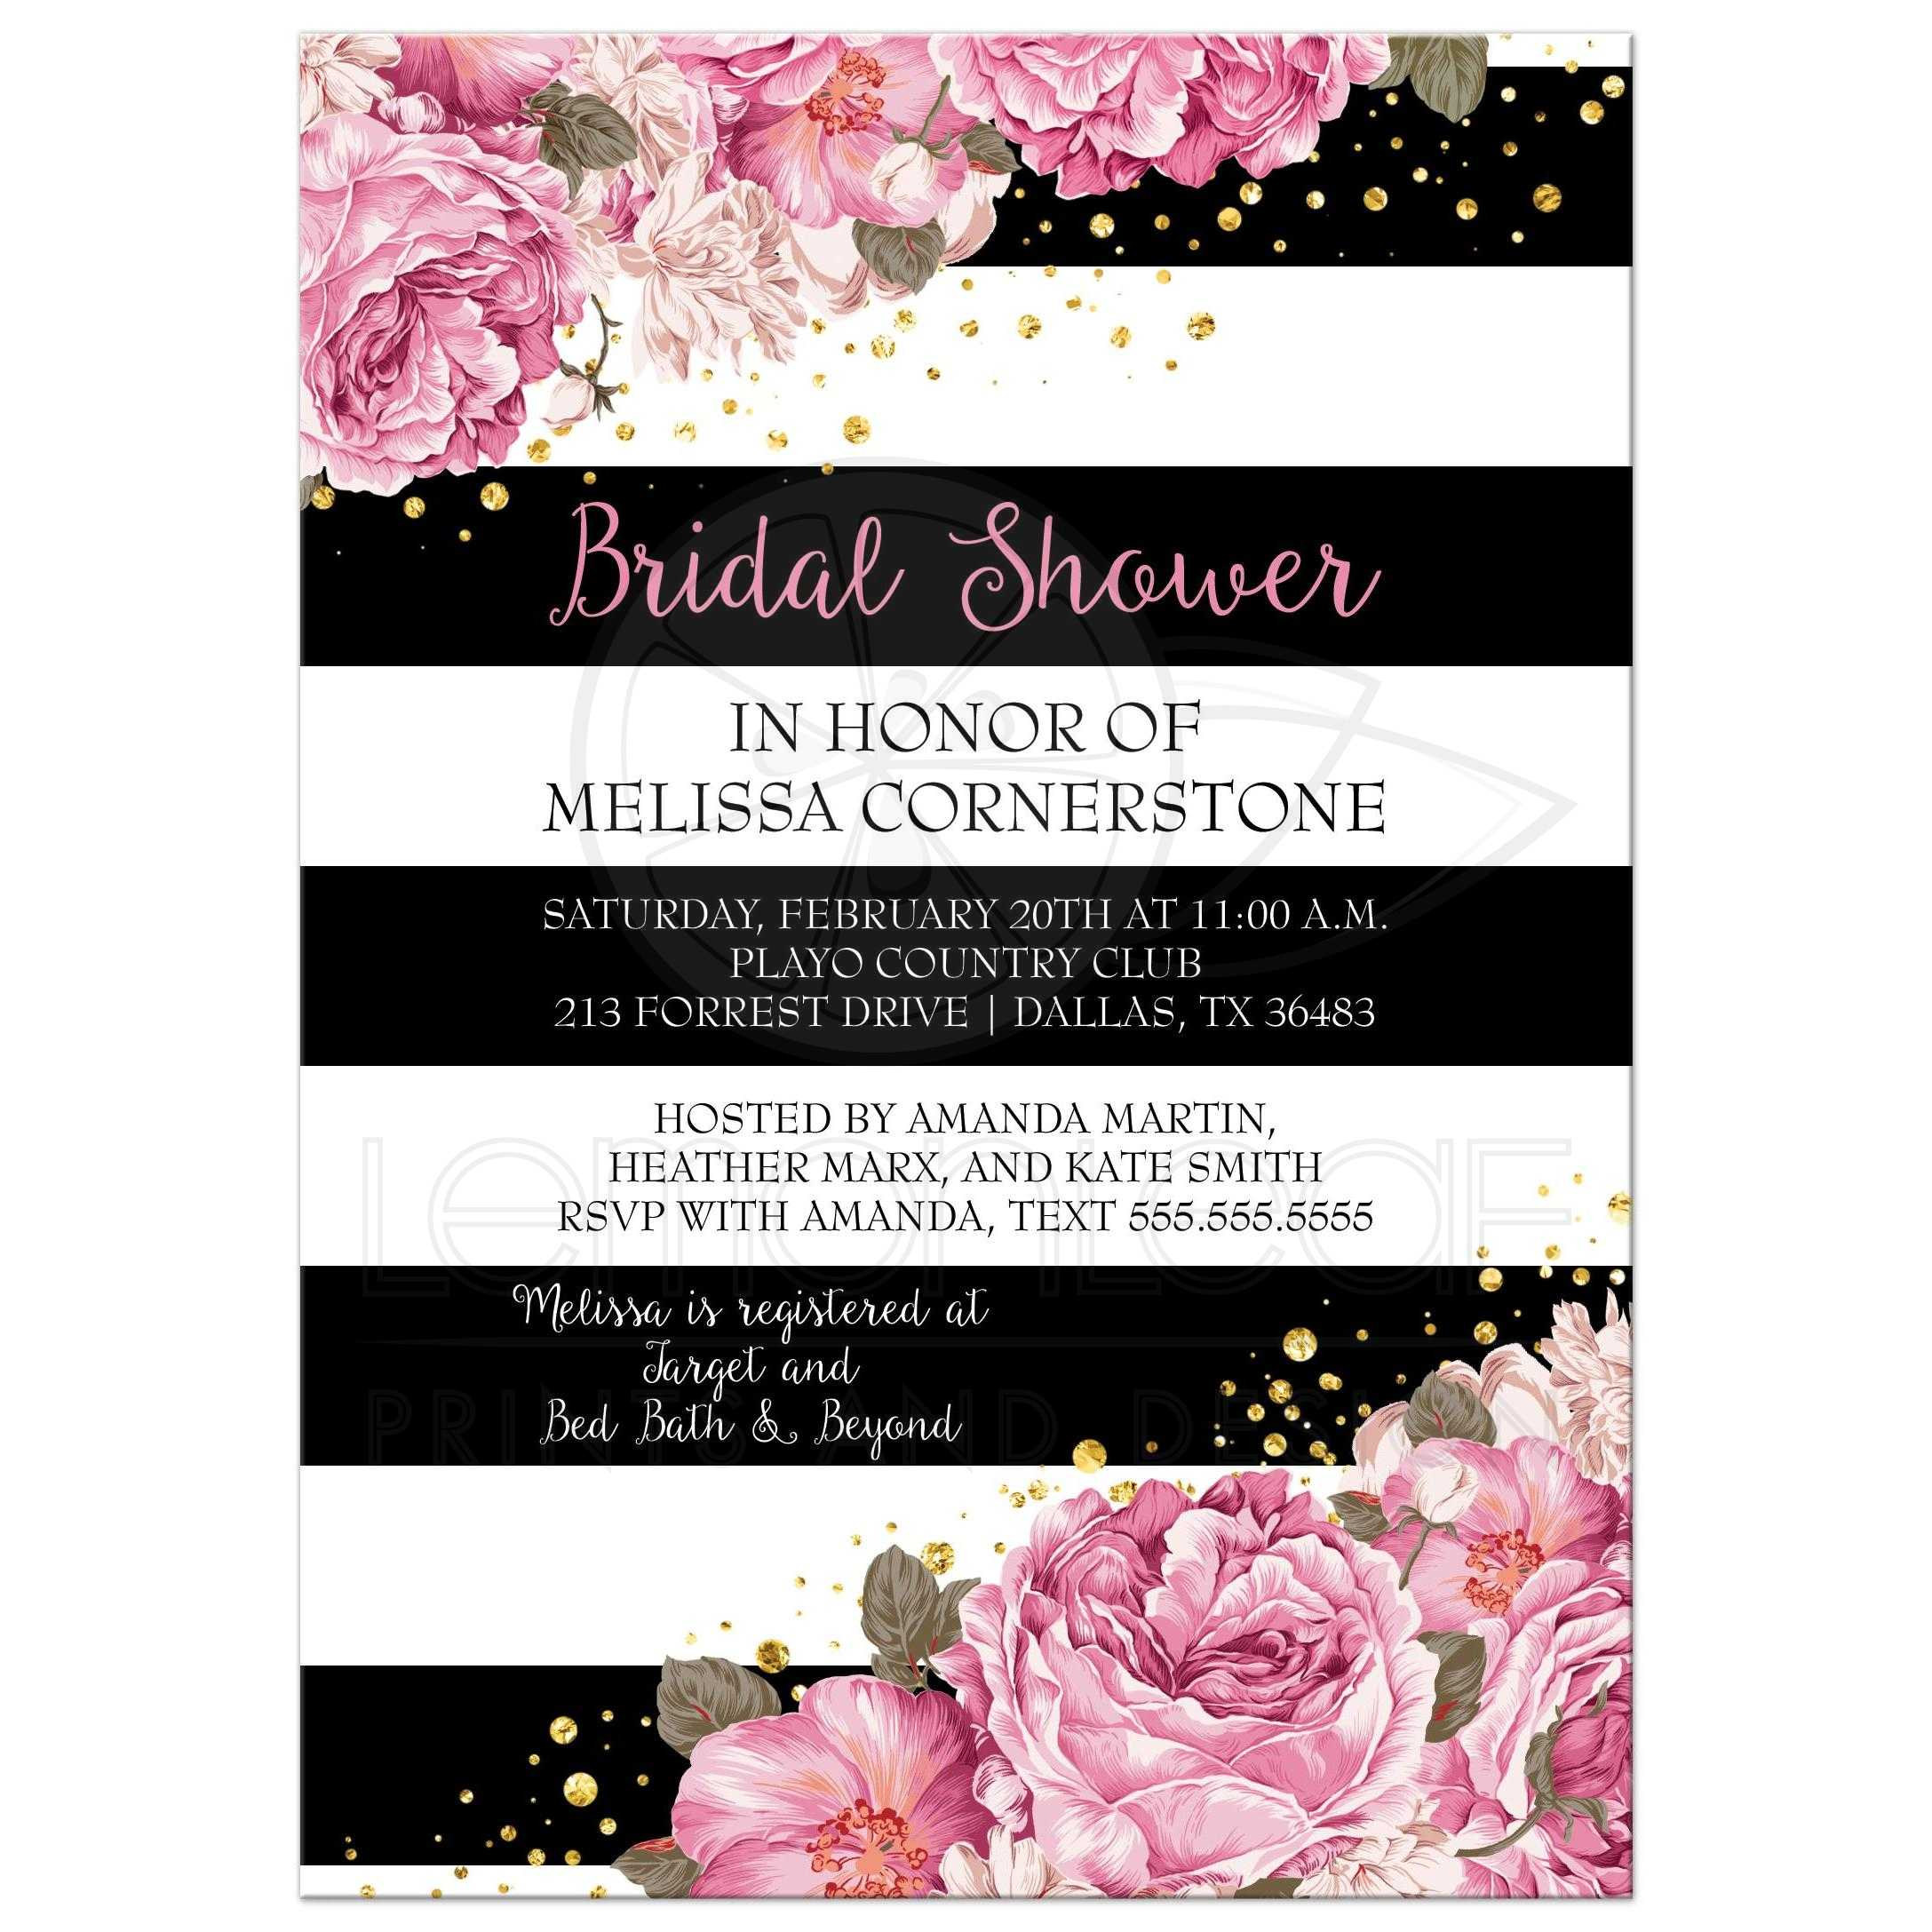 Bridal shower invitation black stripes pink flowers and gold pink gold and black floral stripes bridal shower invitation mightylinksfo